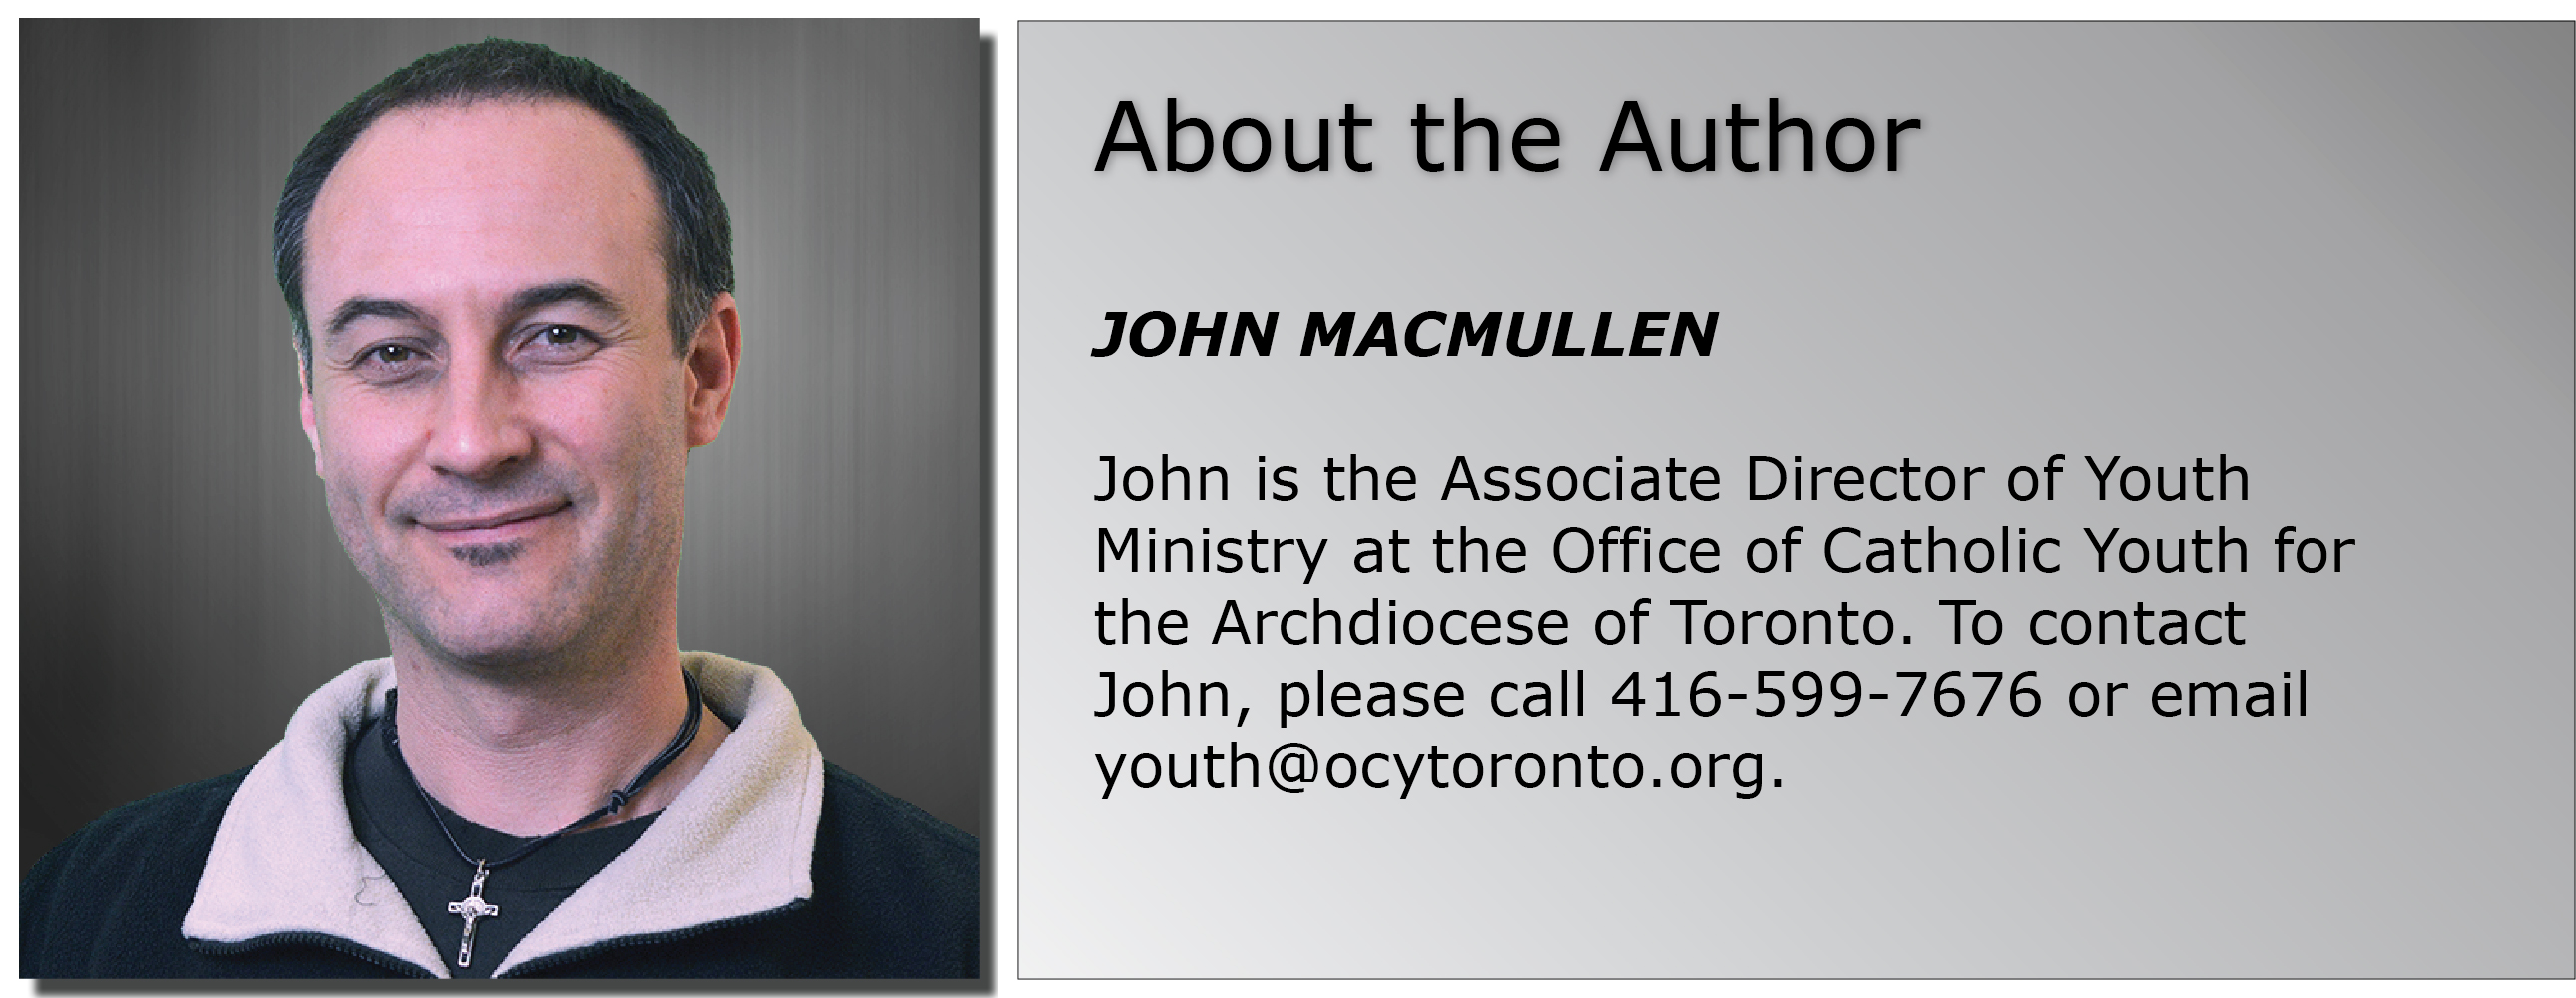 About the Author, John MacMullen is the Associate Director of Youth Ministry at the OCY and can be reached at 416-599-7676